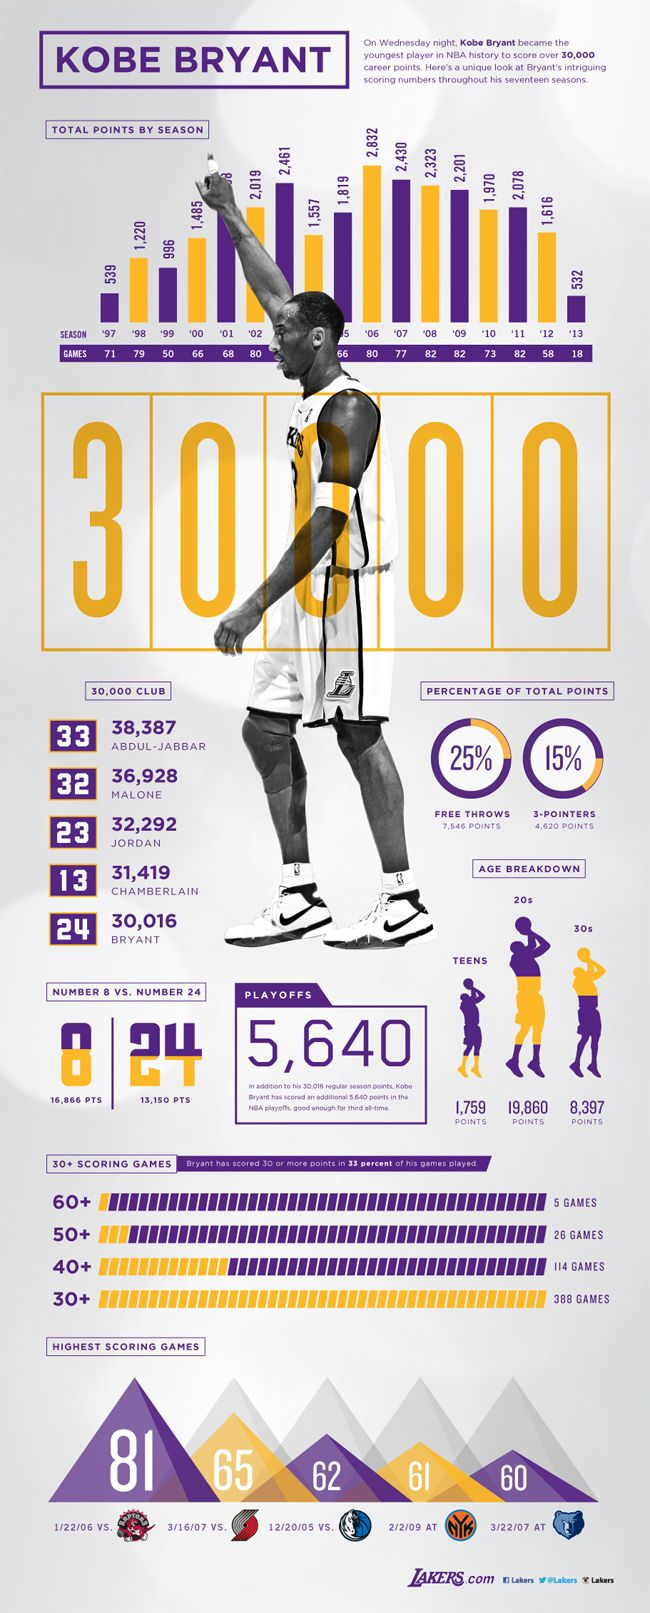 Kobe Bryant 30,000 Points Infographic | THE OFFICIAL SITE OF THE LOS ANGELES…